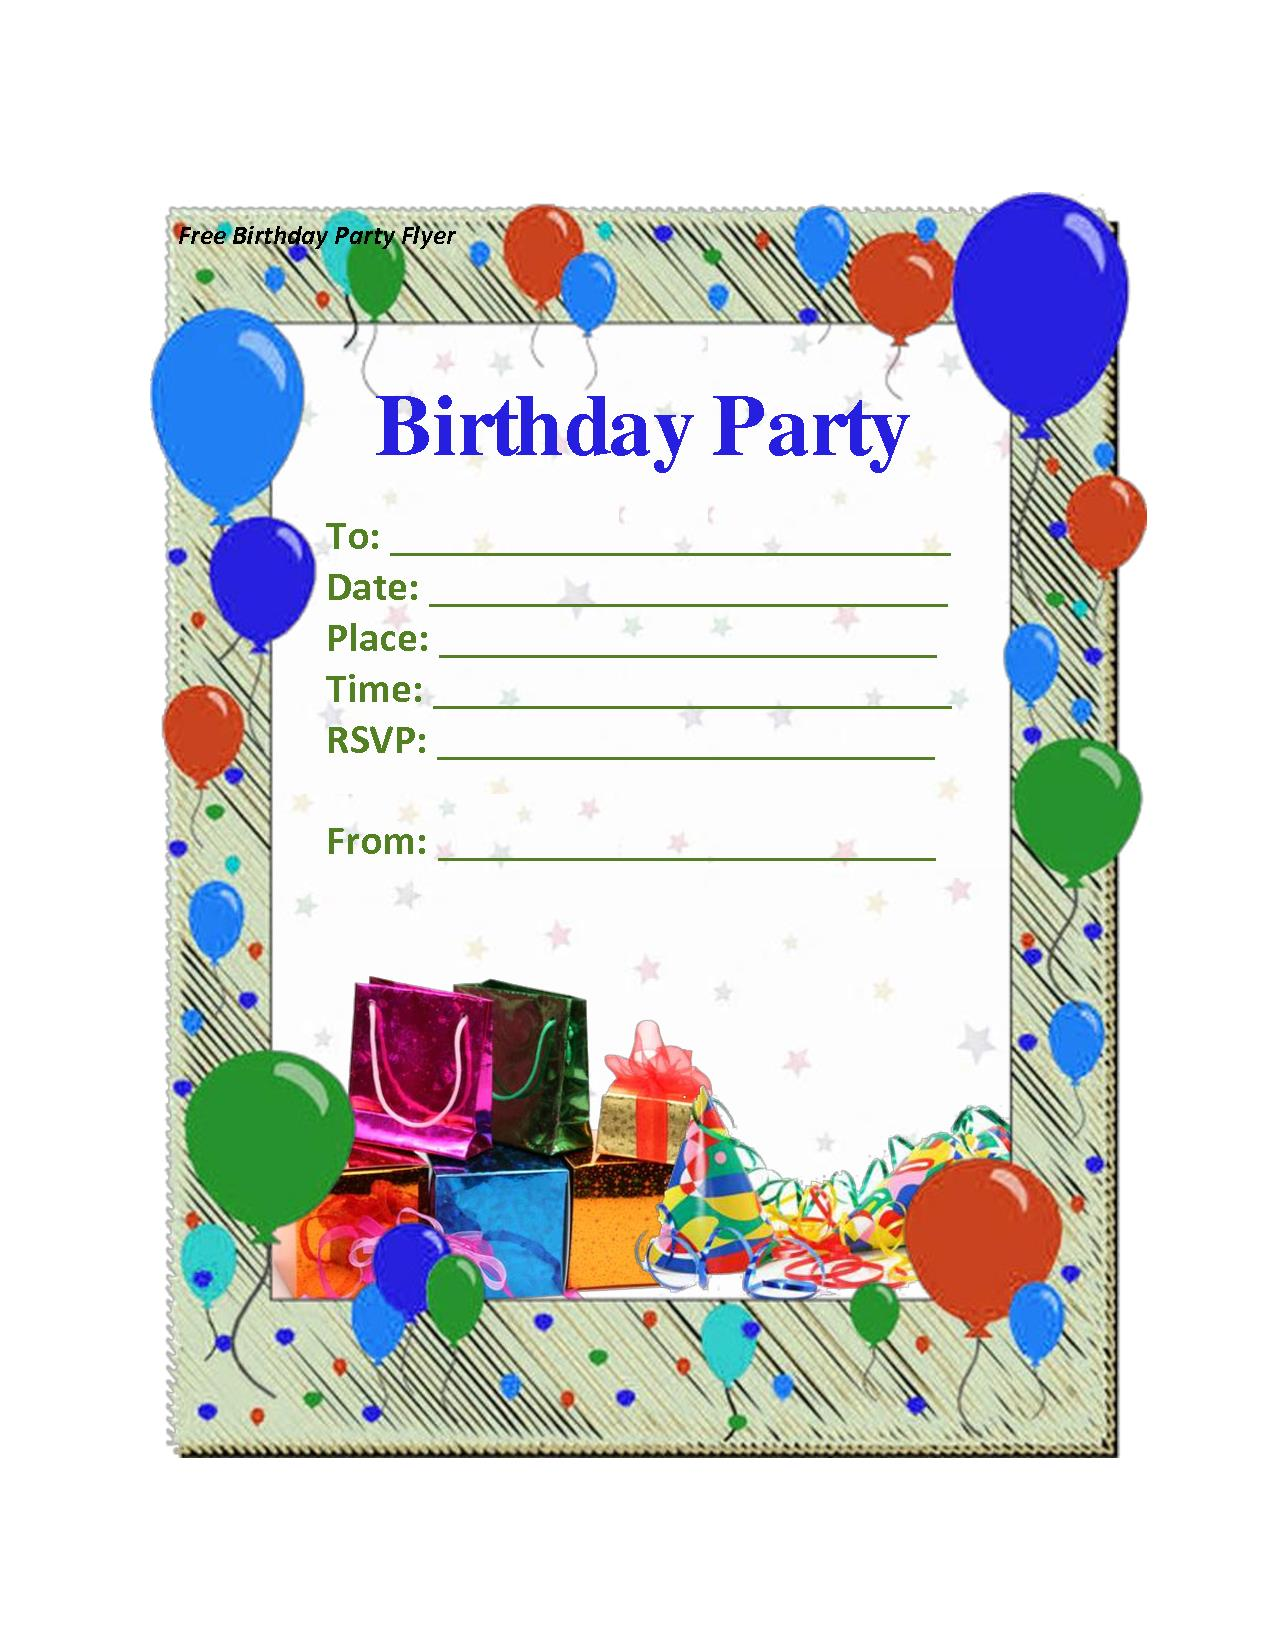 cool birthday card templates ; Birthday-invitations-templates-and-get-inspiration-to-create-the-birthday-invitation-design-of-your-dreams-1